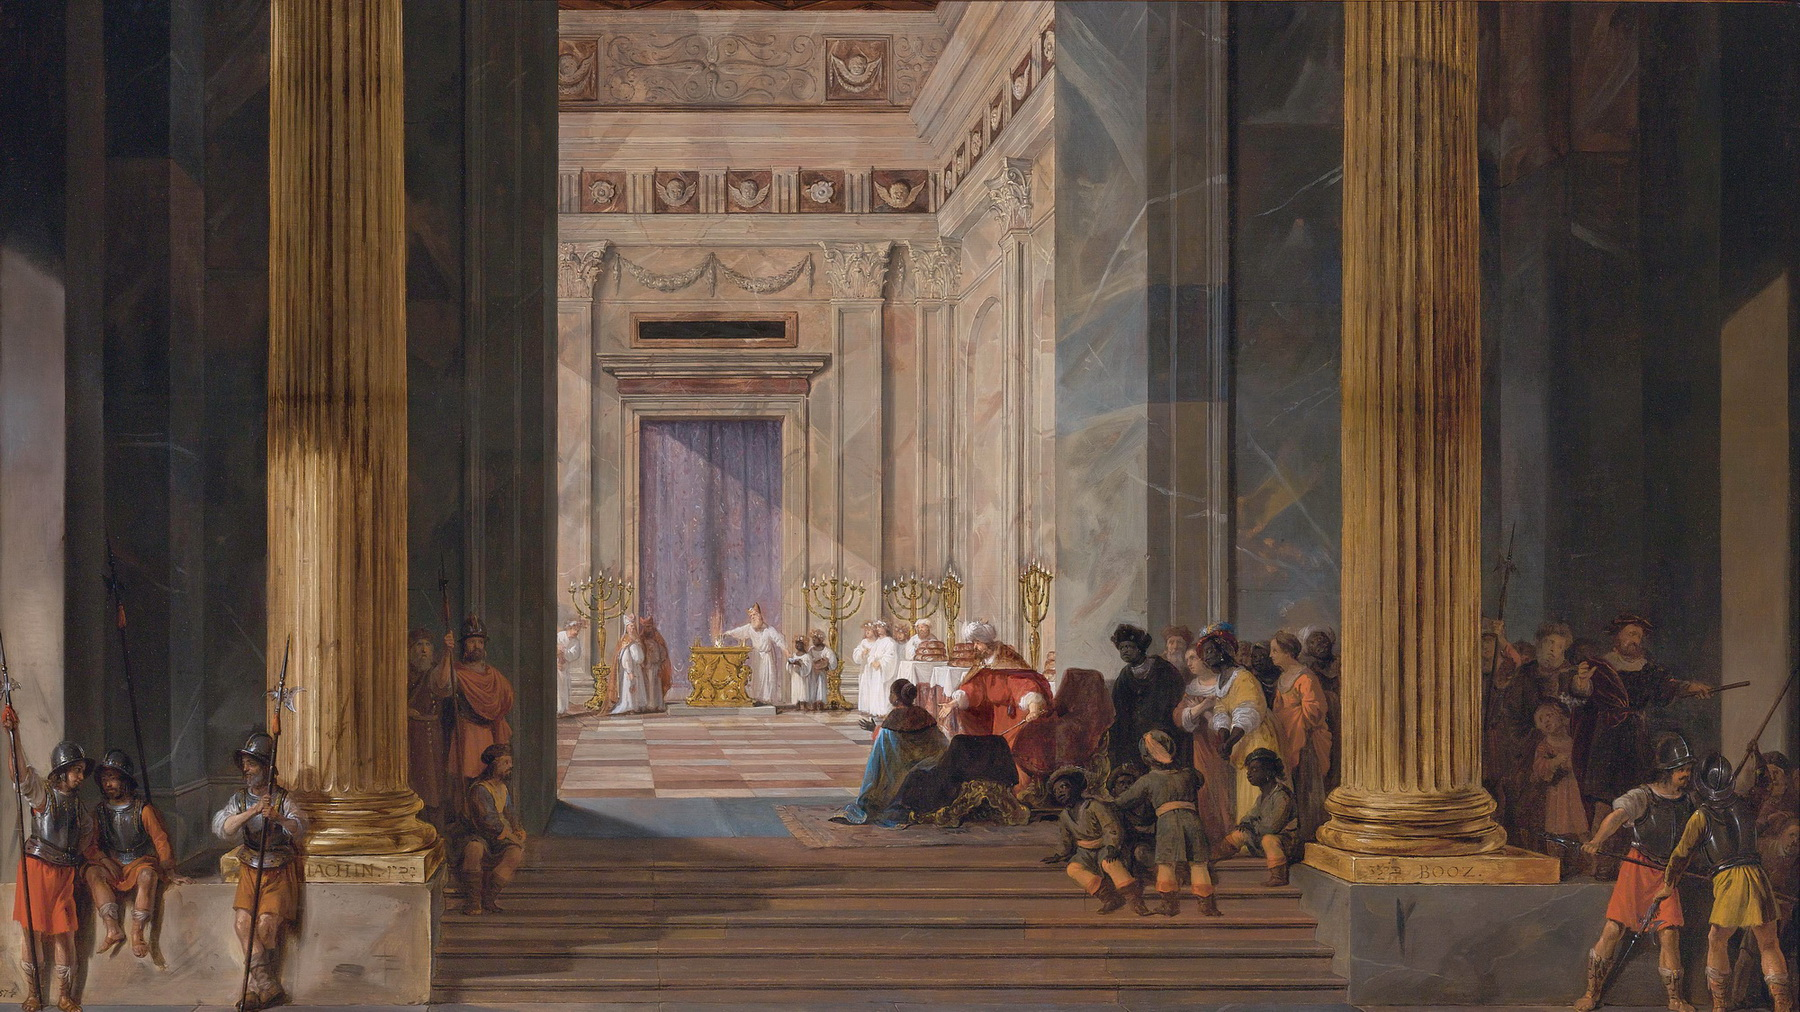 The Queen of Sheba before the temple of Solomon in Jerusalem by Salomon de Bray 1597-1664-1800